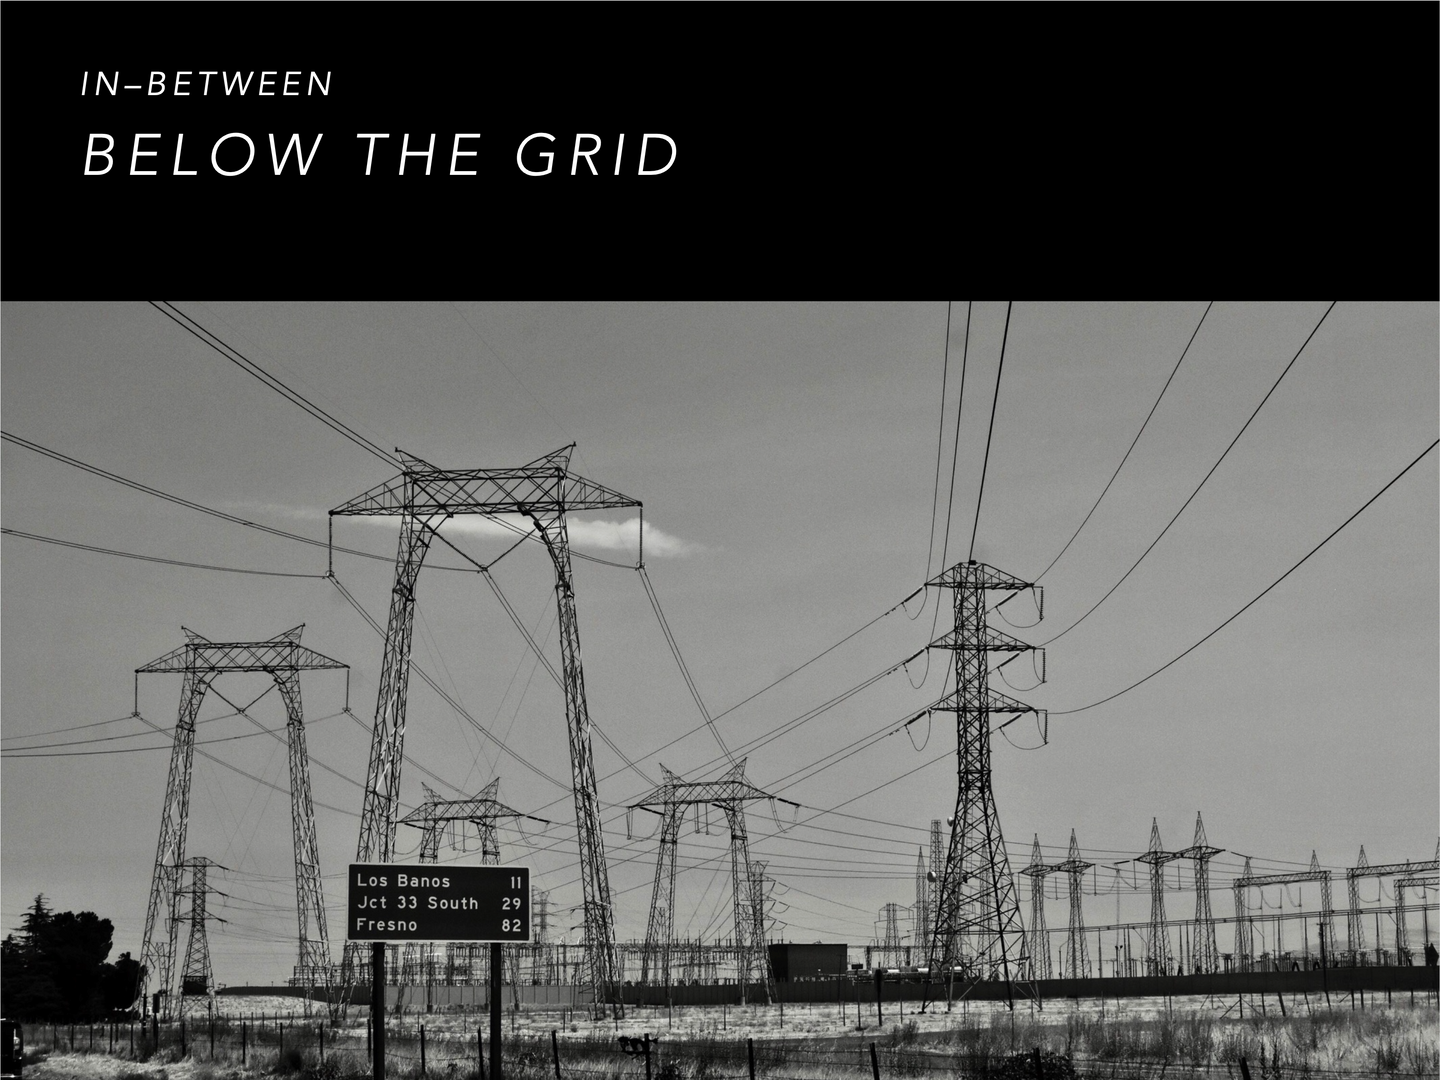 BELOW THE GRID